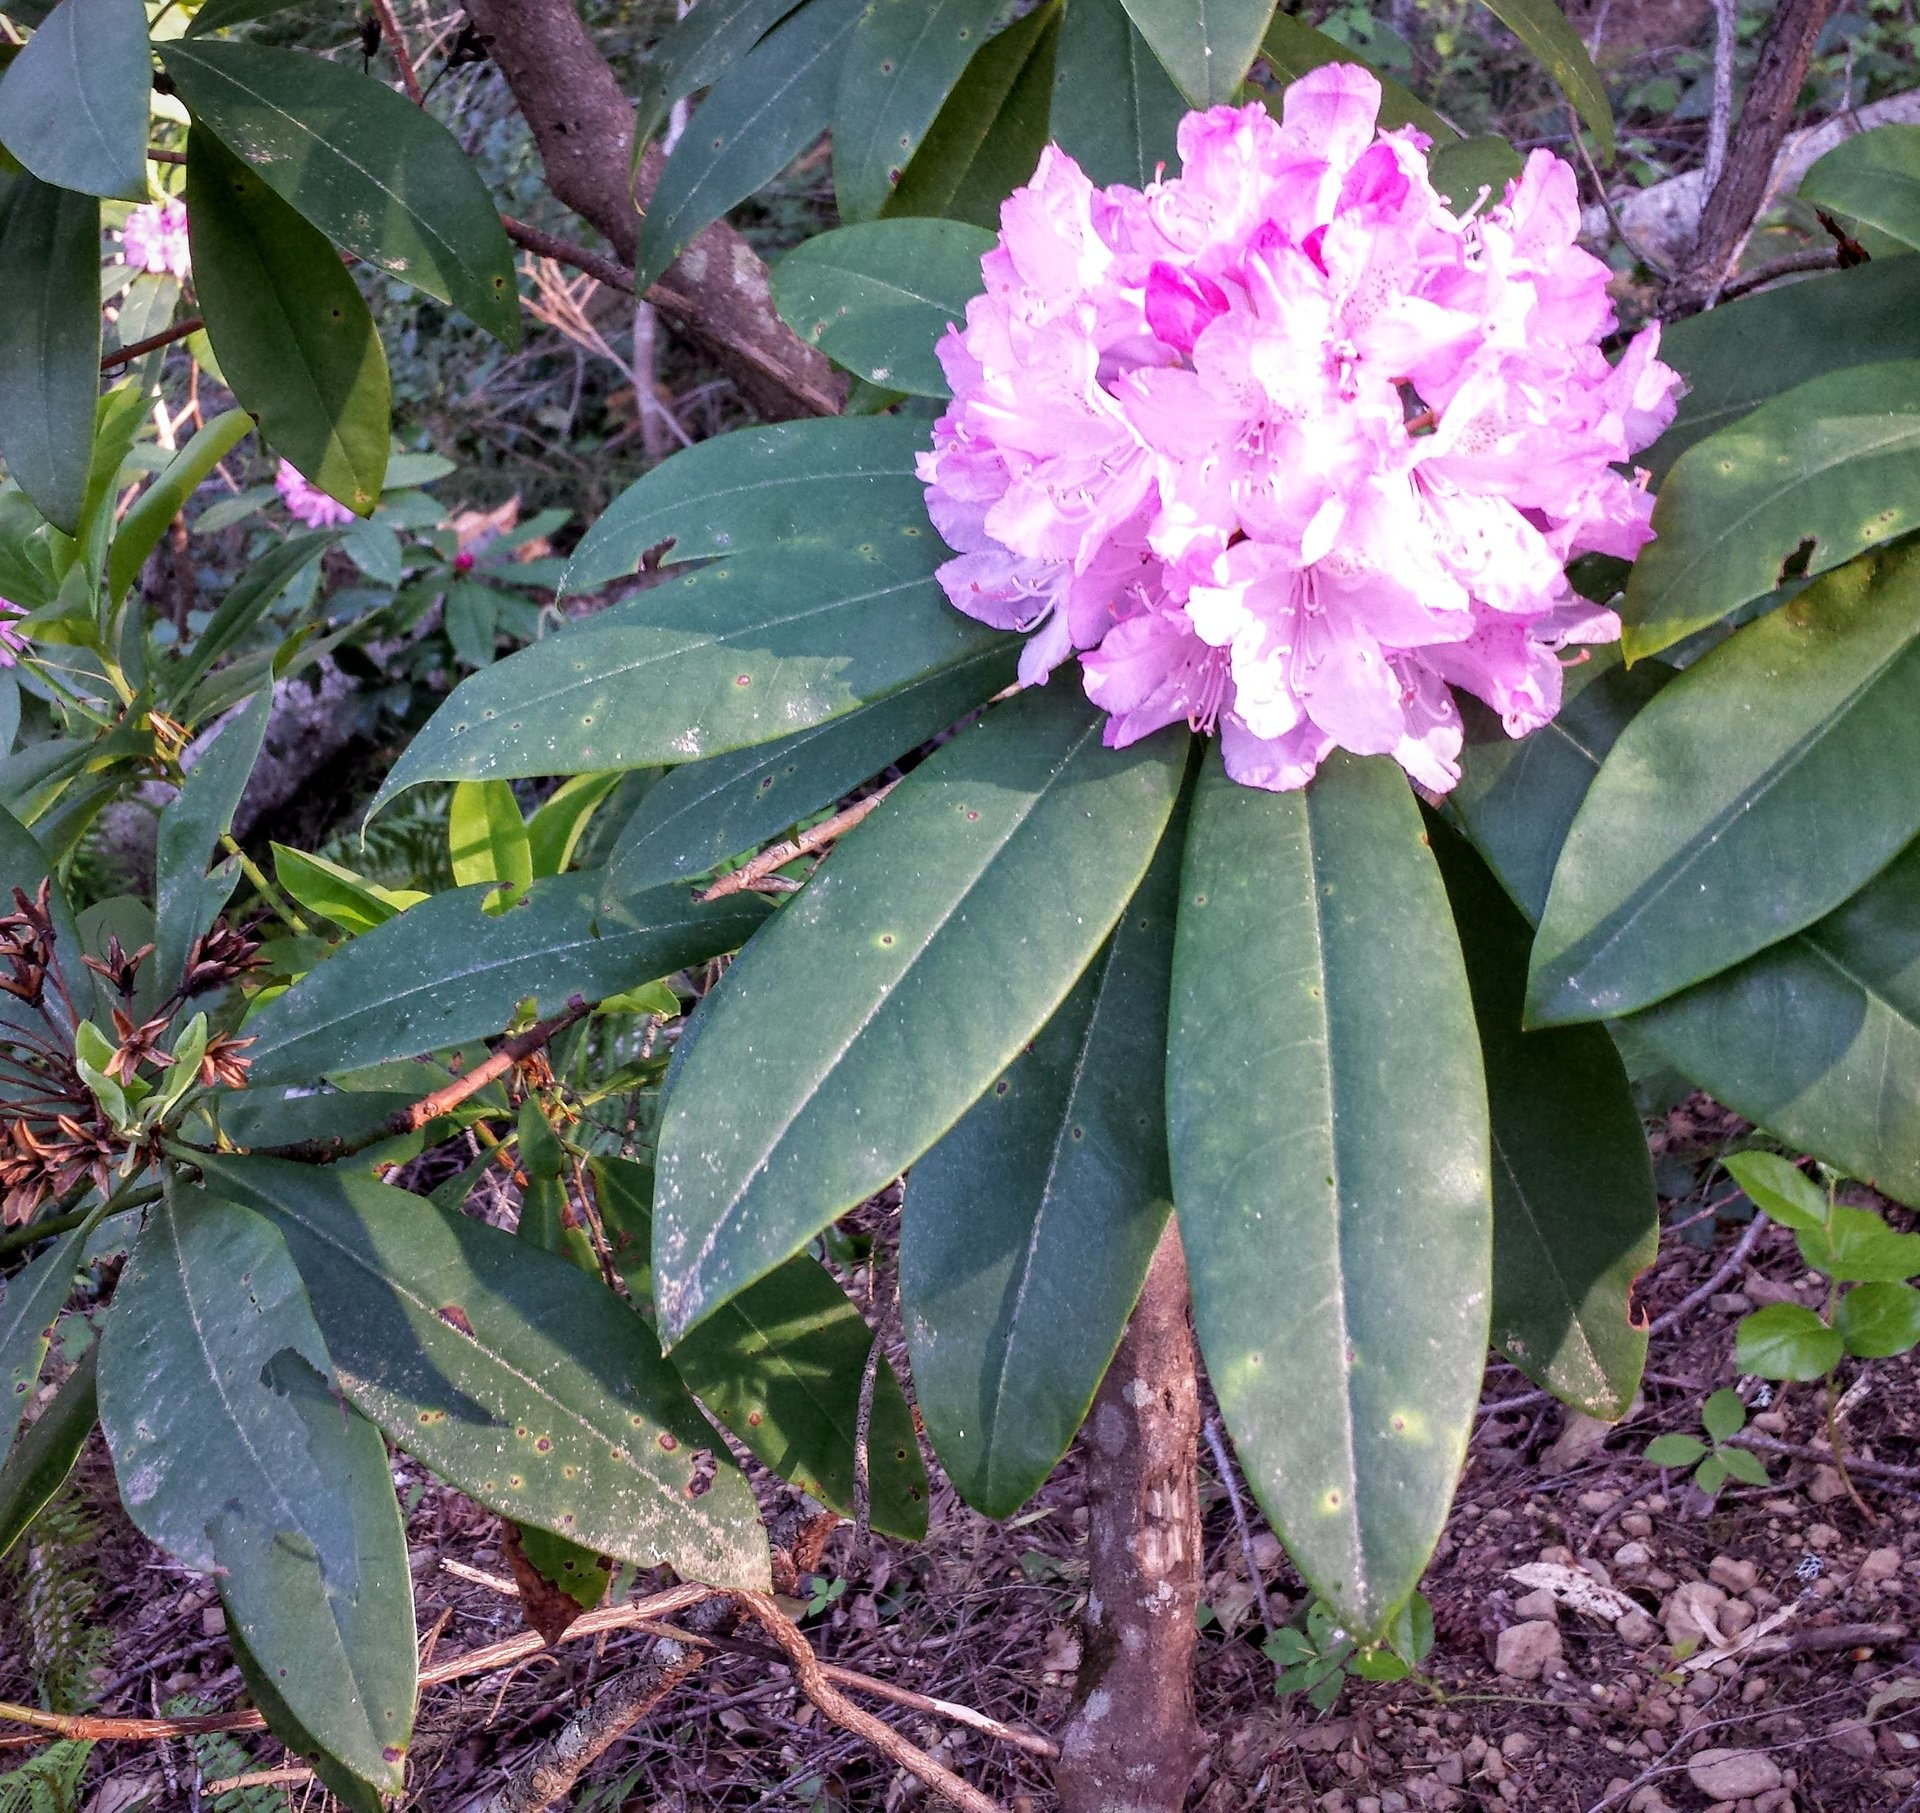 Pacific Rhododendron in Washington - Best Season 2020